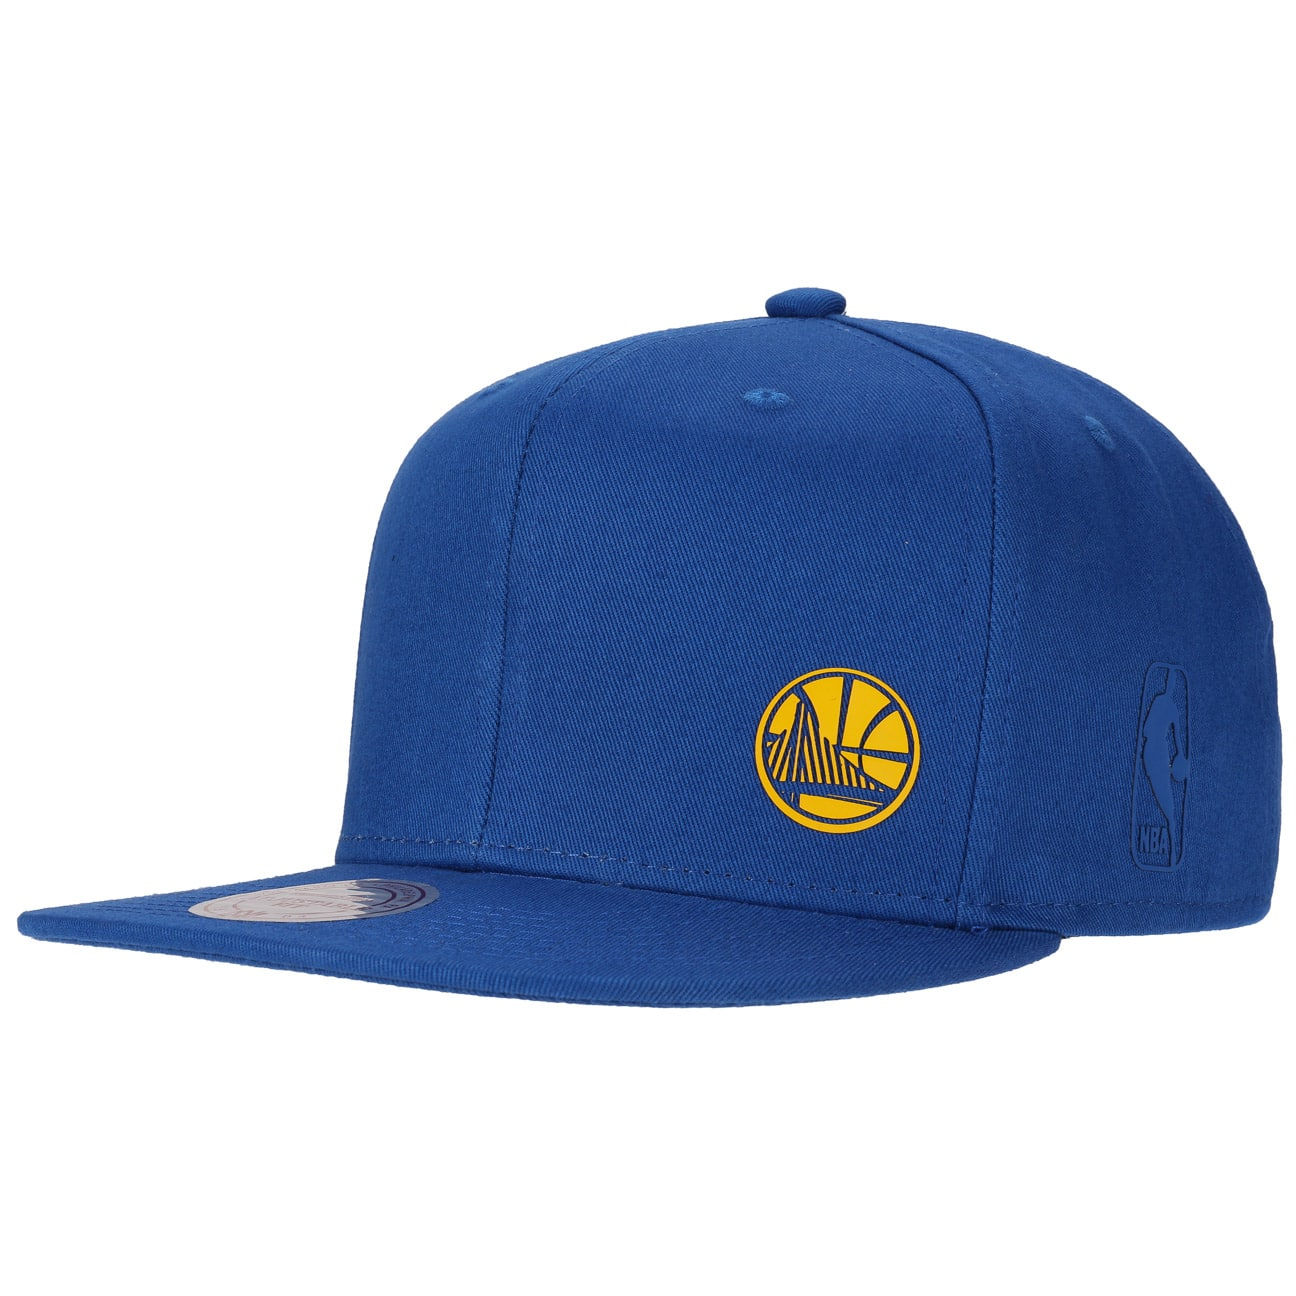 Absolute Warriors Cap by Mitchell & Ness  gorra de baseball